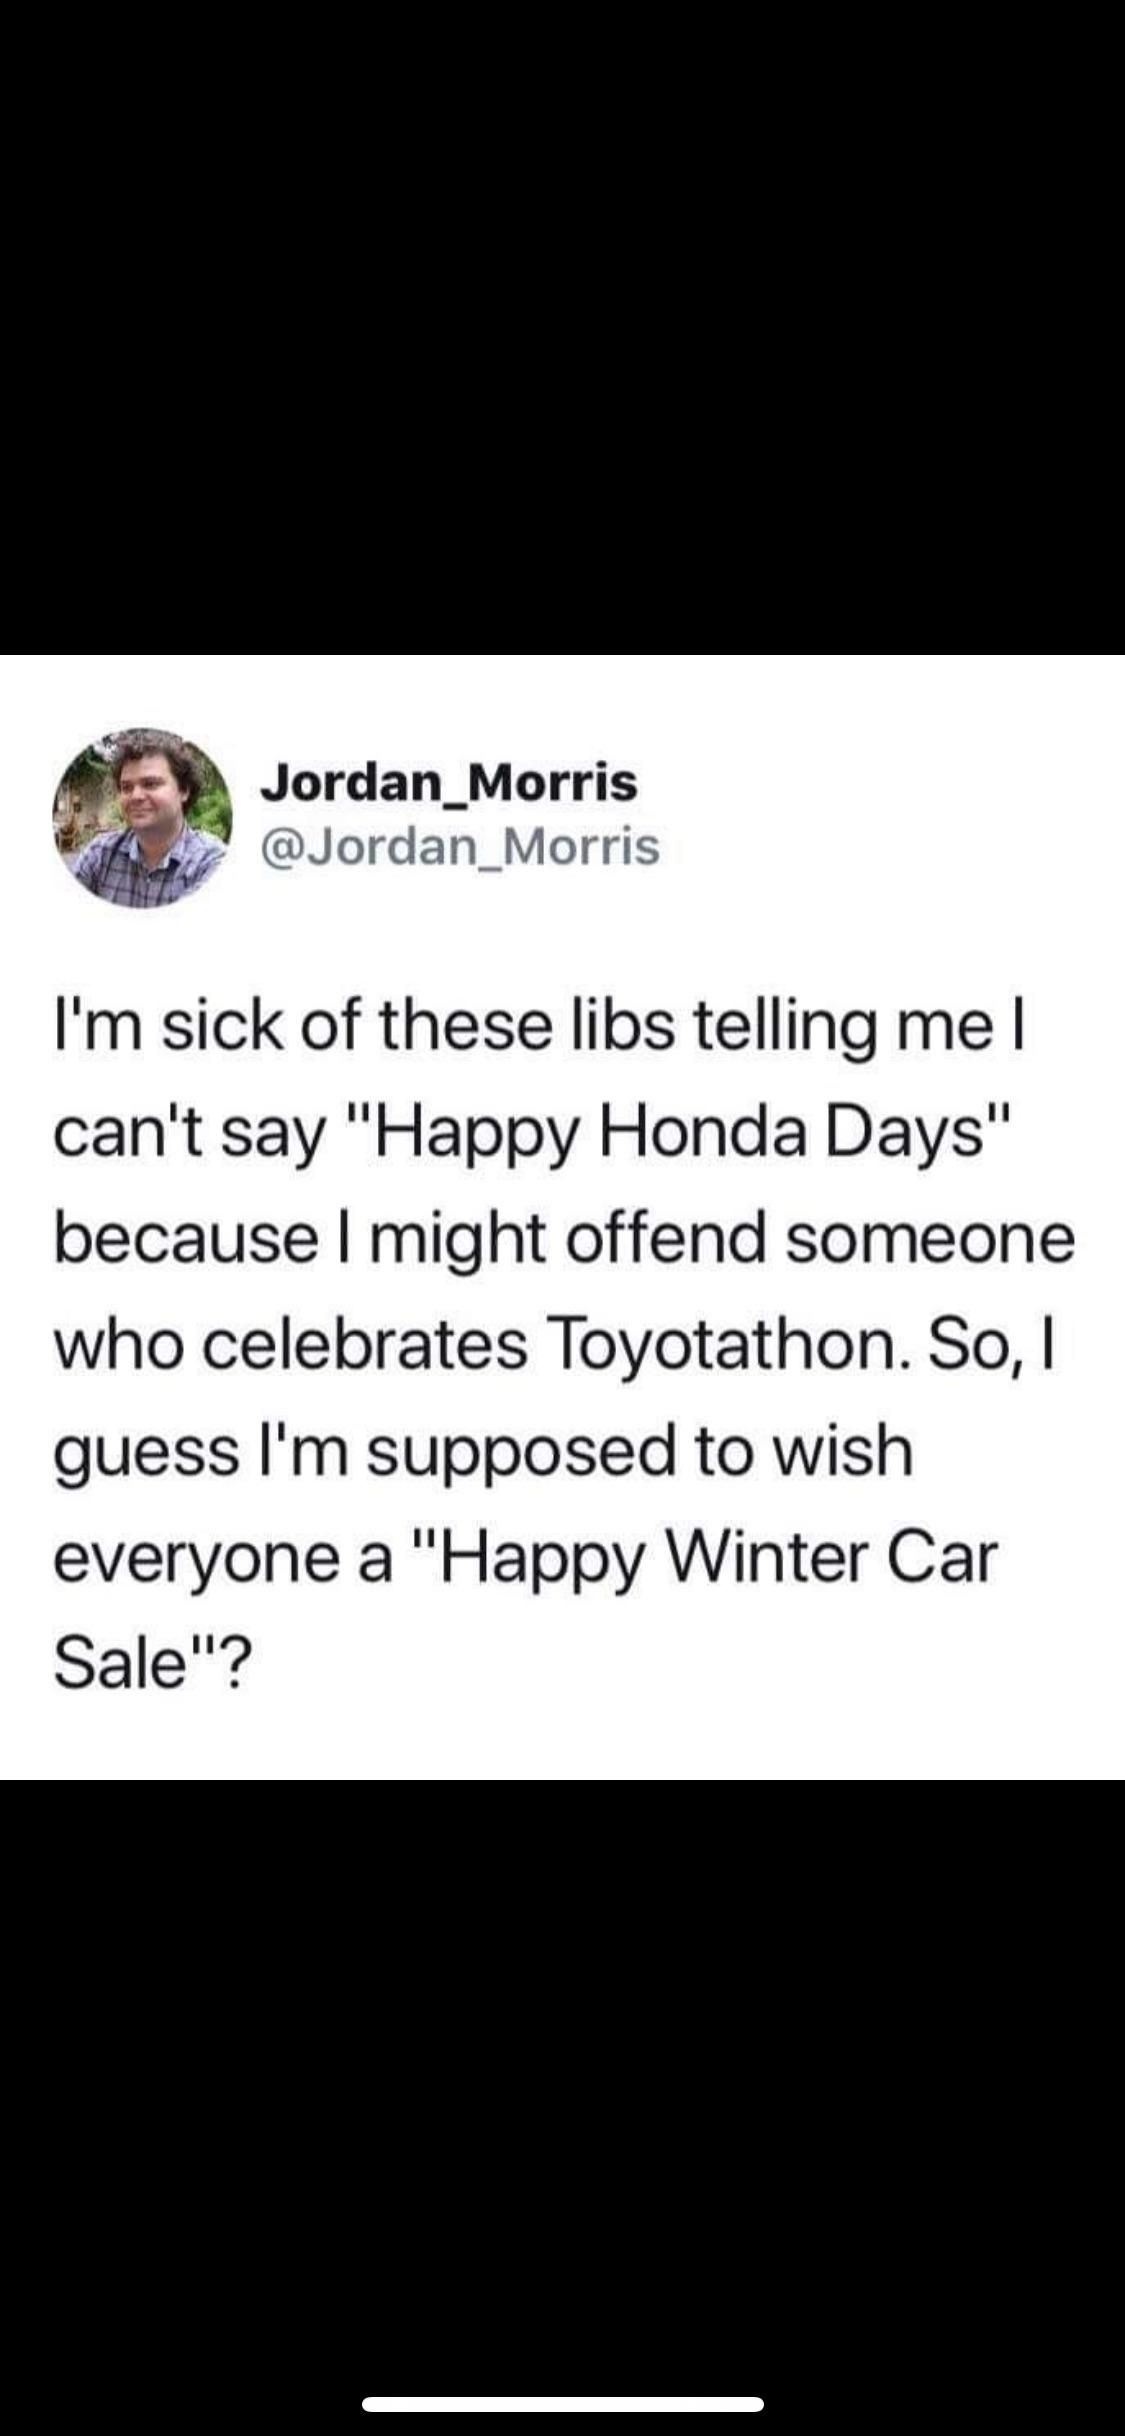 Everyone gets offended during the holiday season nowadays